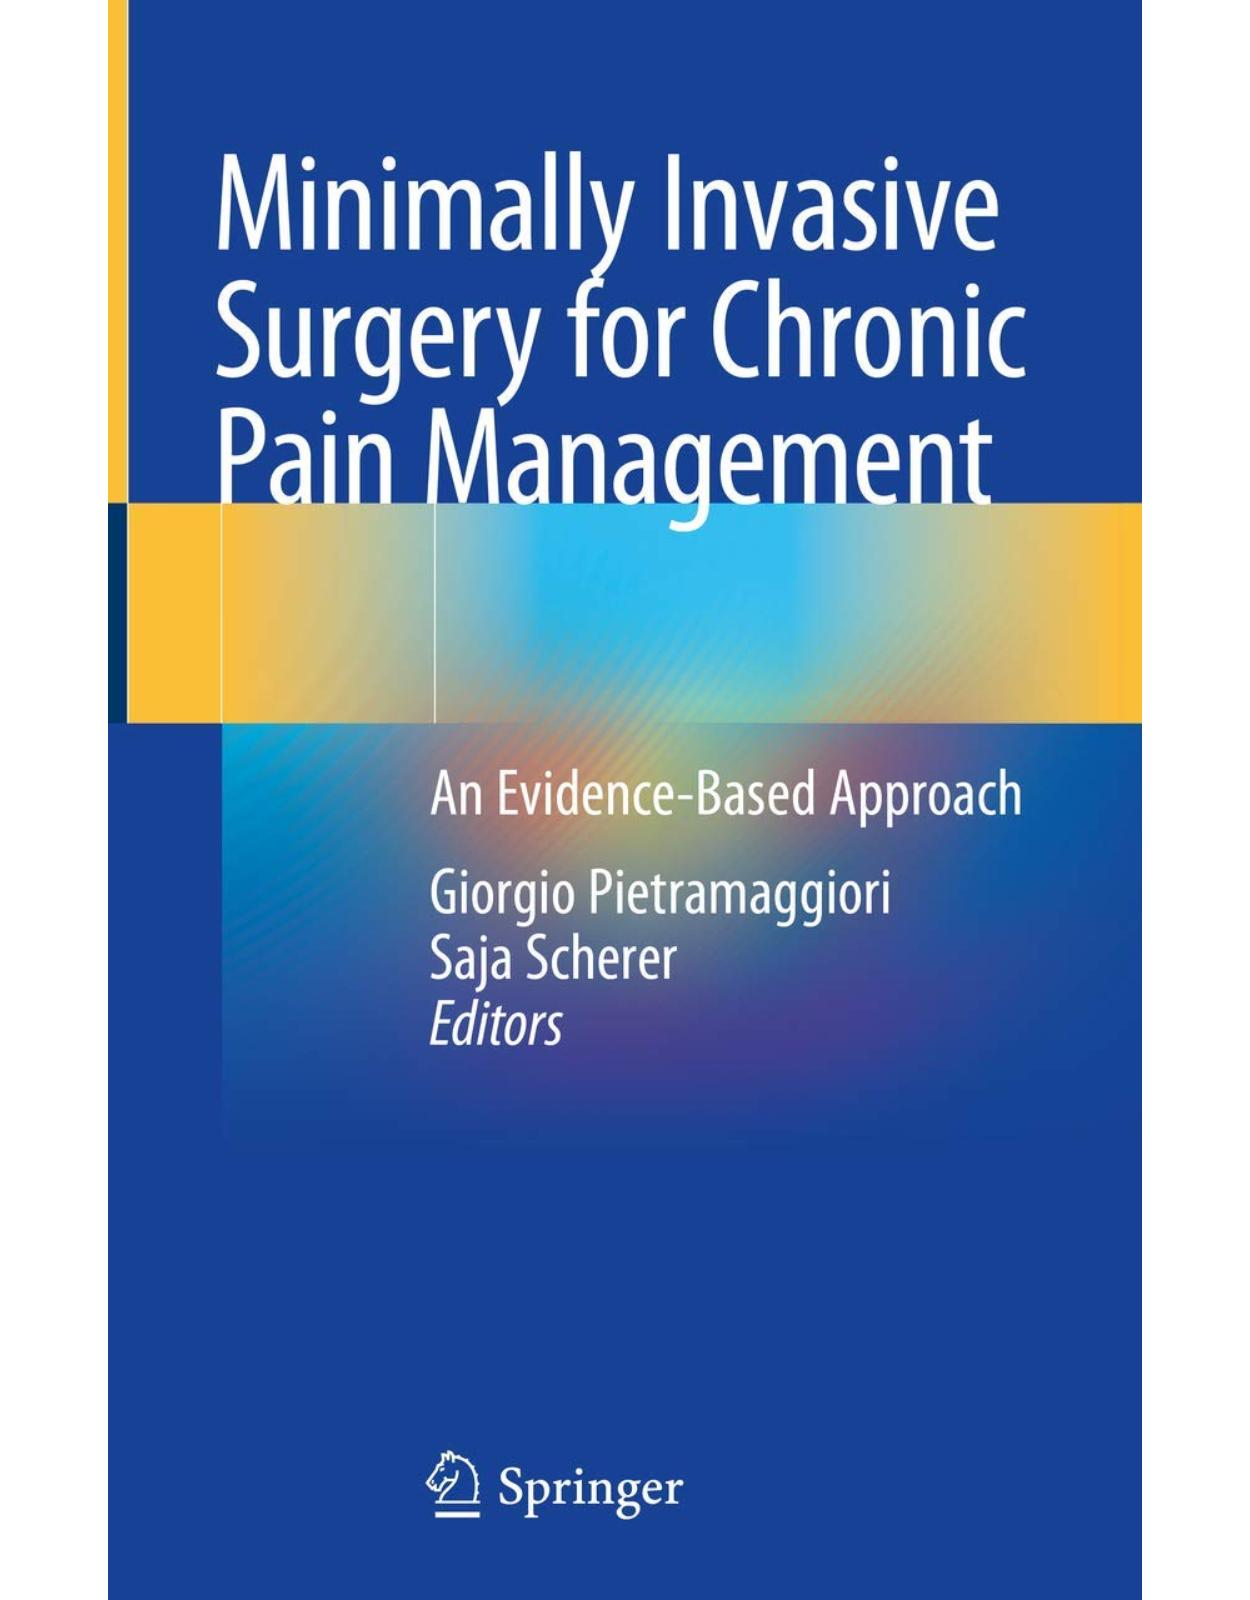 Minimally Invasive Surgery for Chronic Pain Management: An Evidence-Based Approach